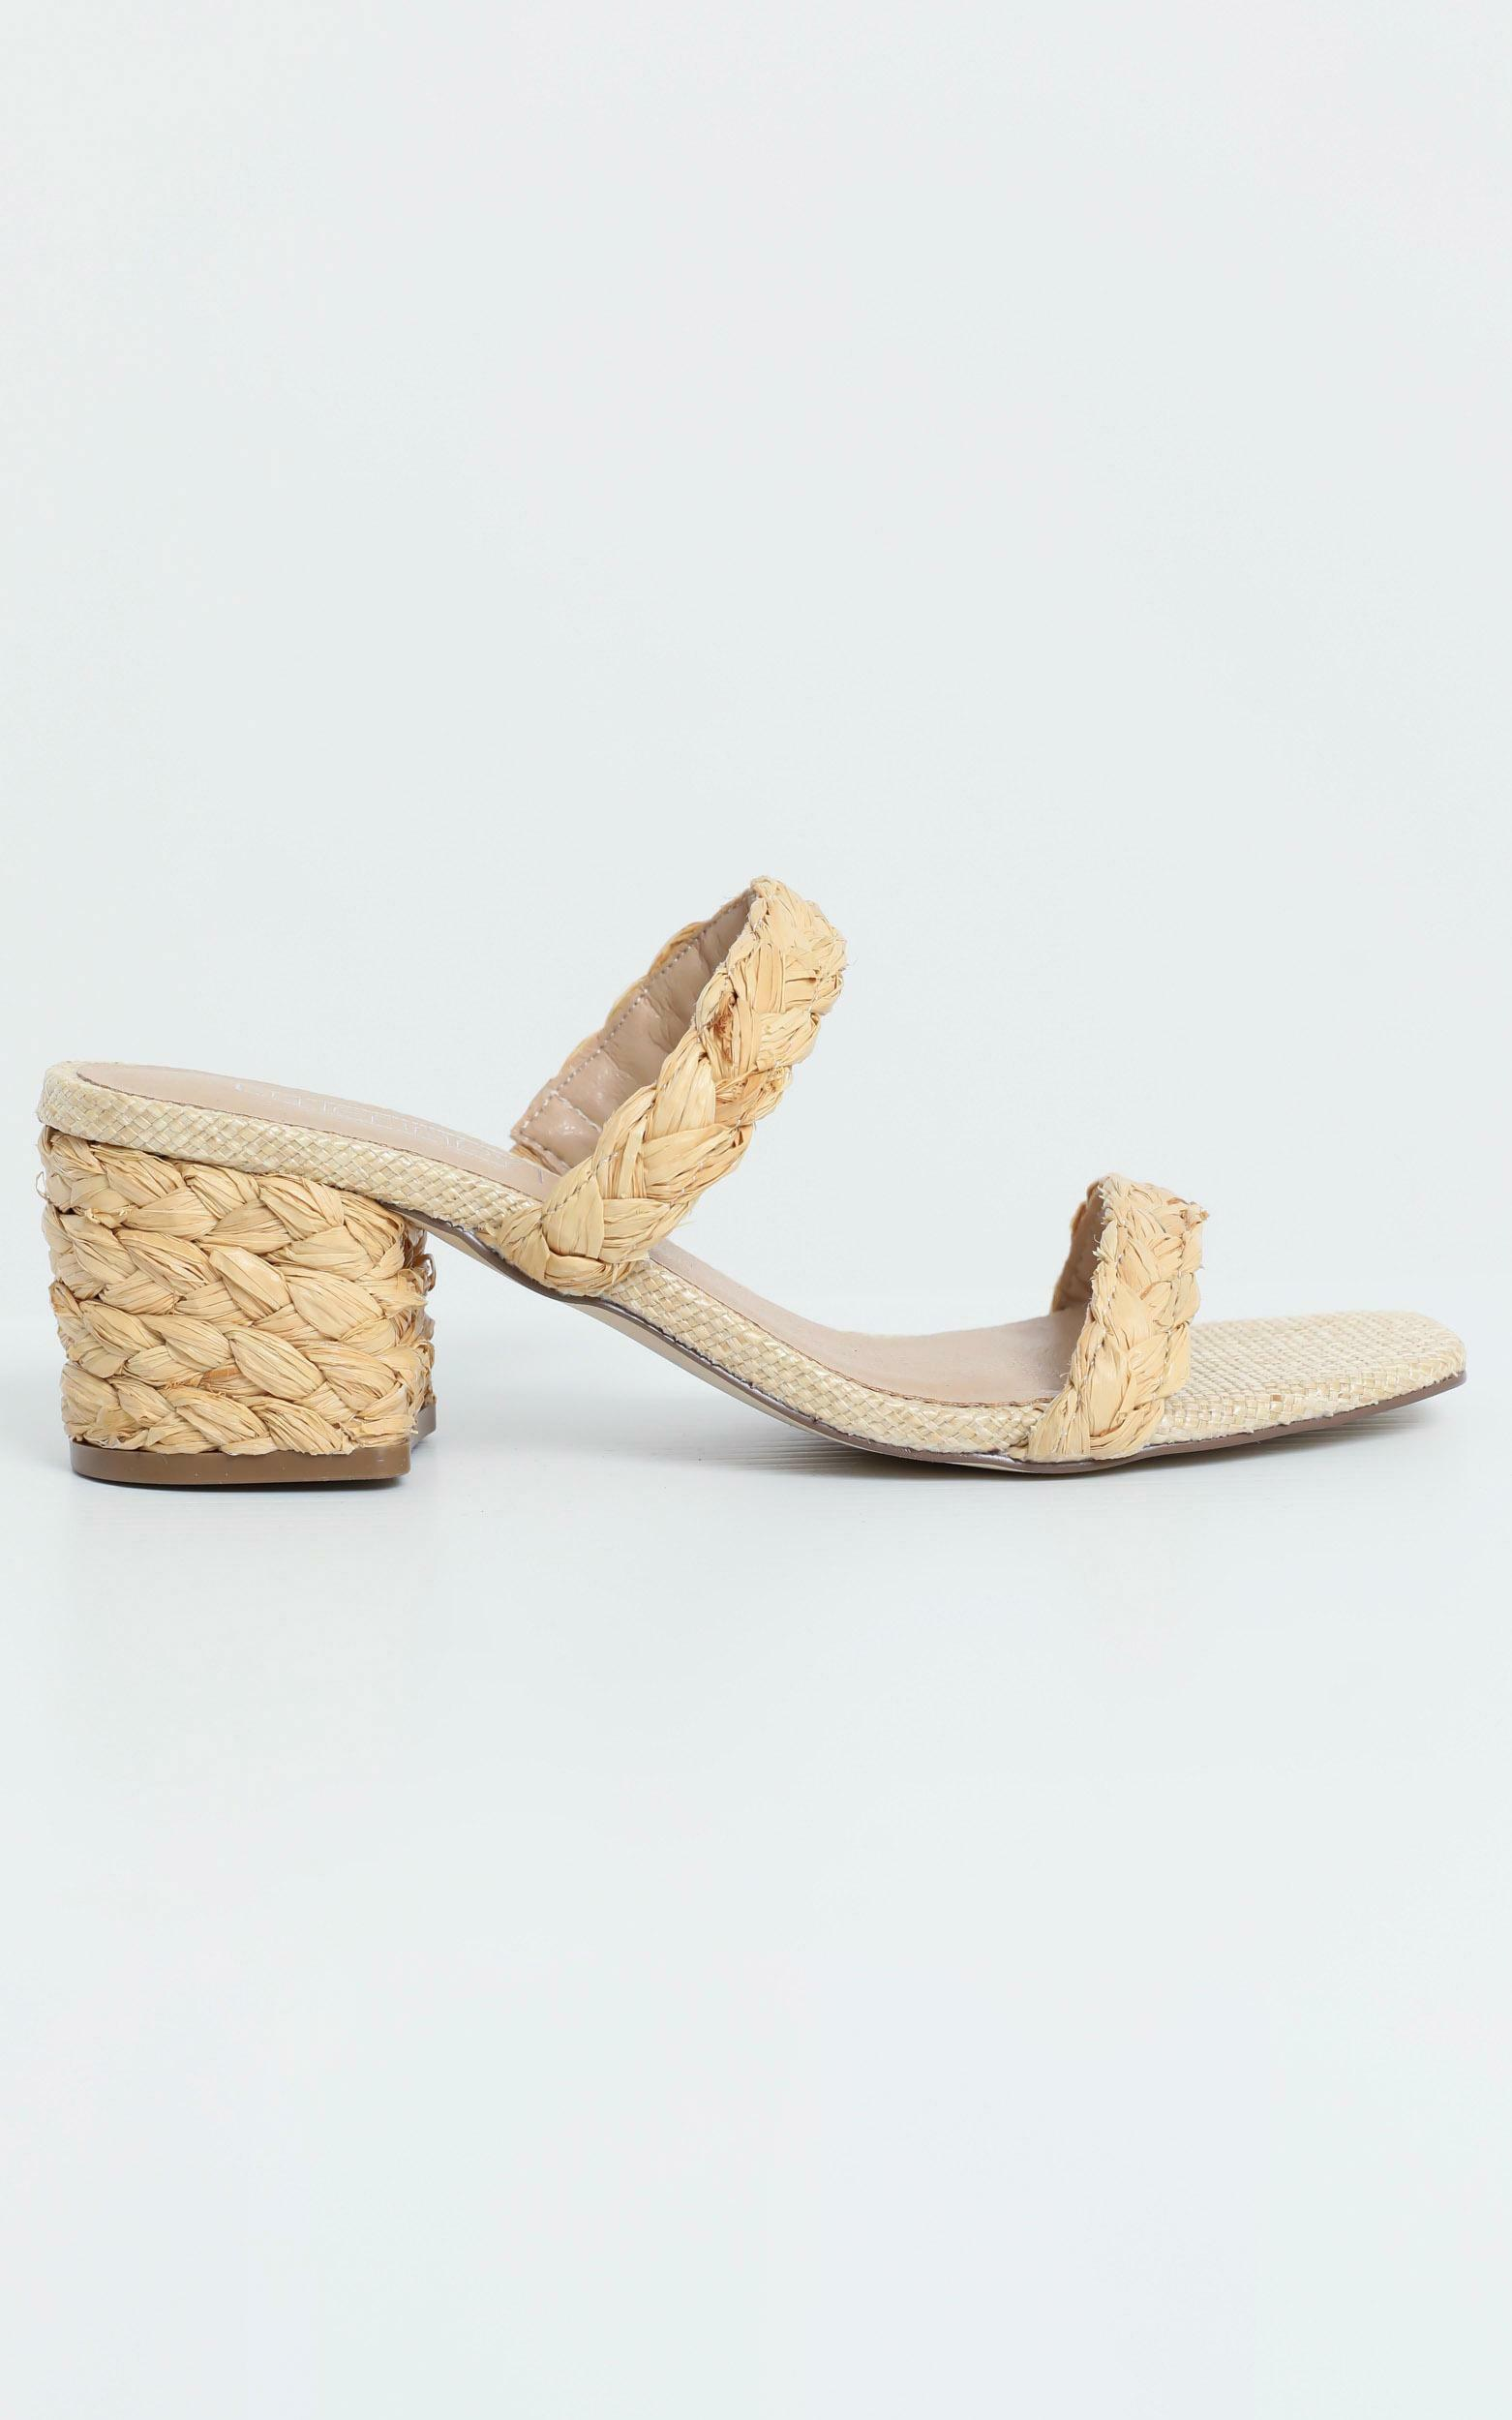 Therapy - Greta Heels in Natural - 5, NEU5, hi-res image number null